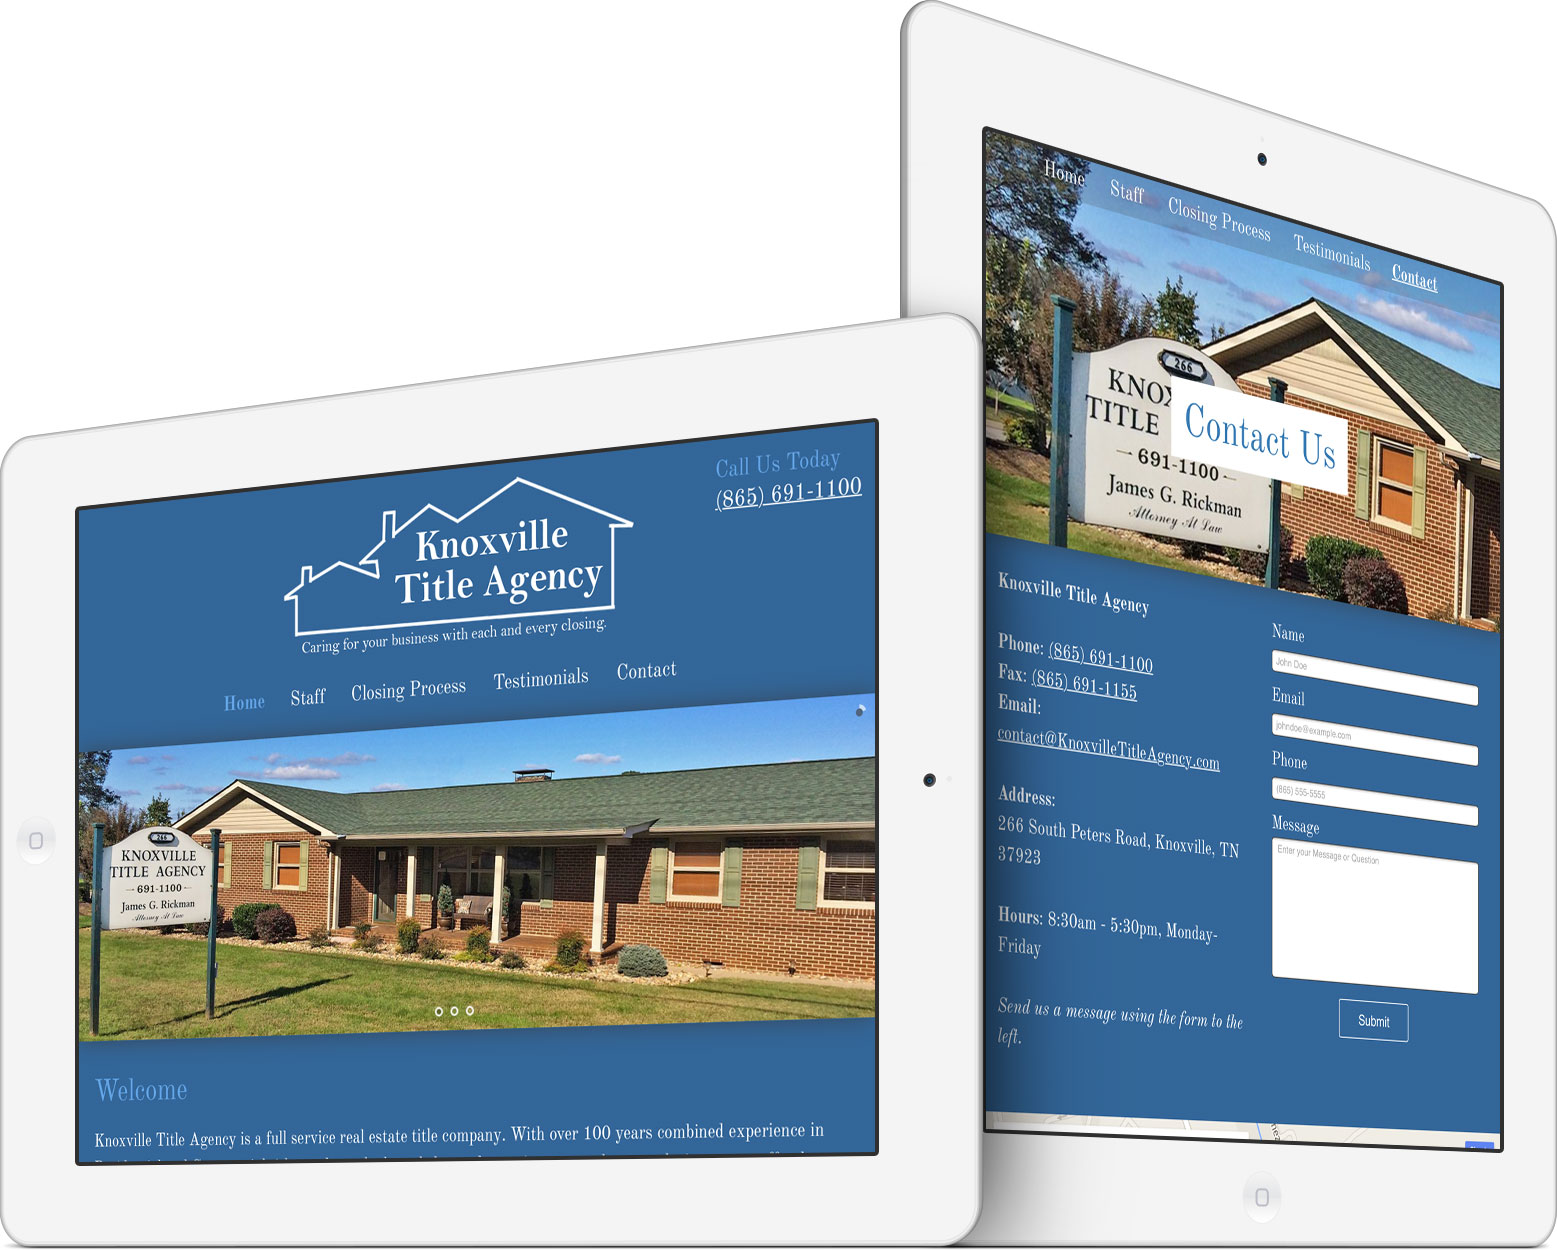 Knoxville Title Agency on a Tablet